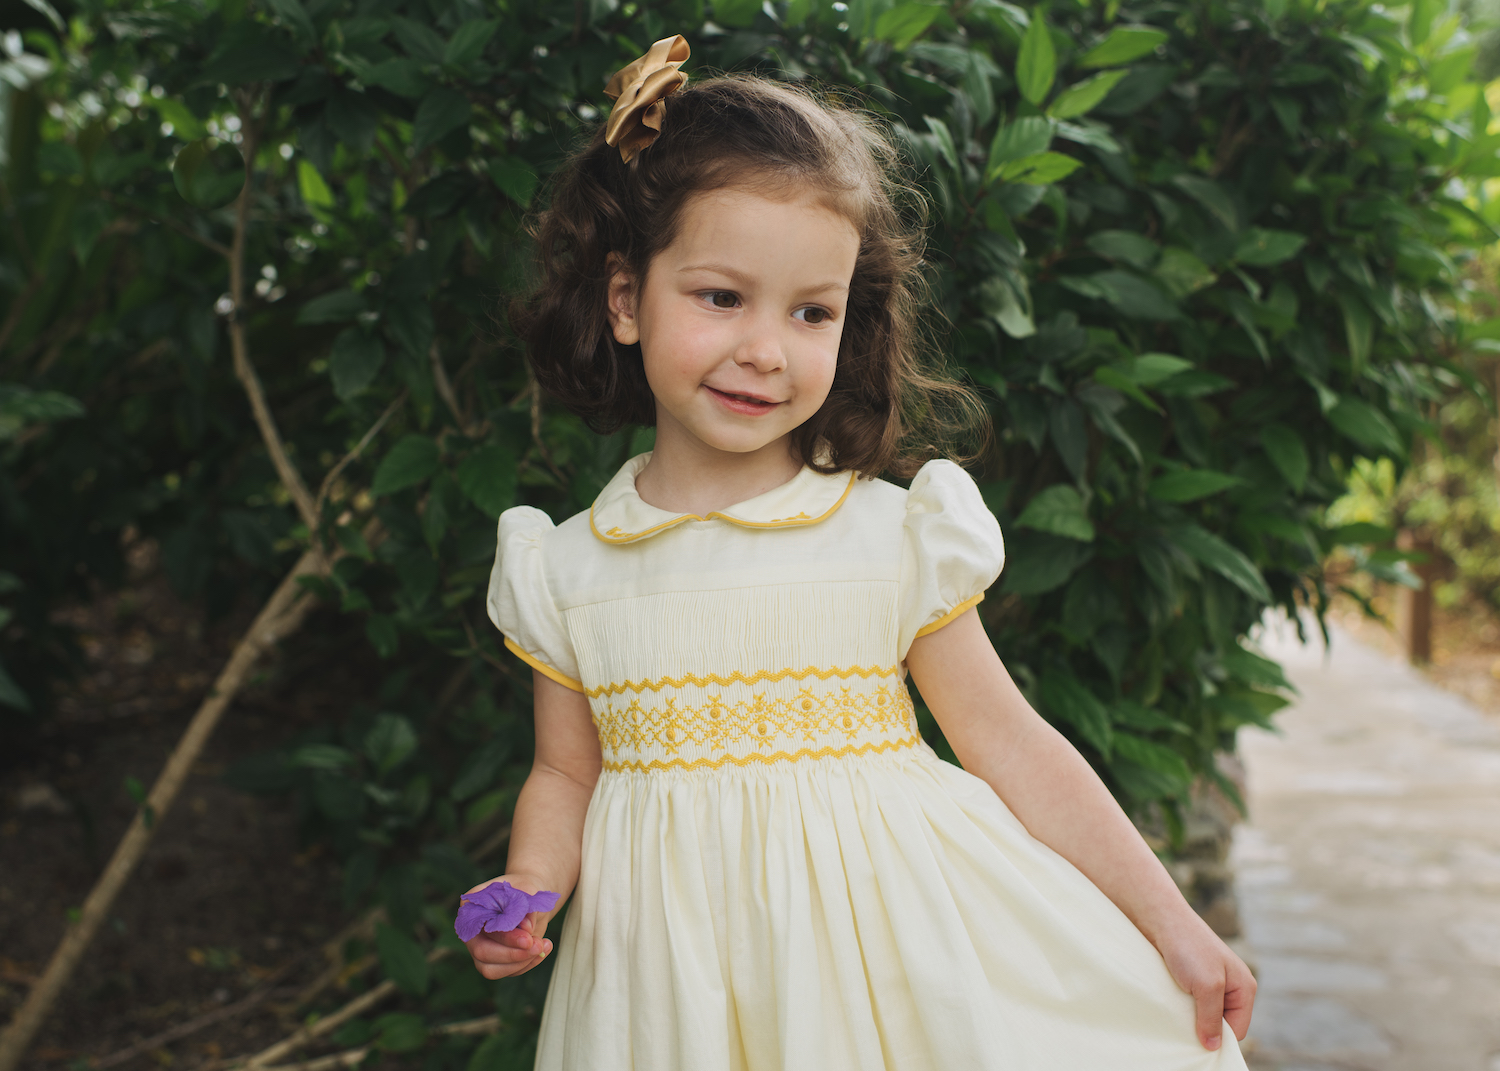 L'ile aux Fées - Parisian children boutique handmade classic chic smocked dresses